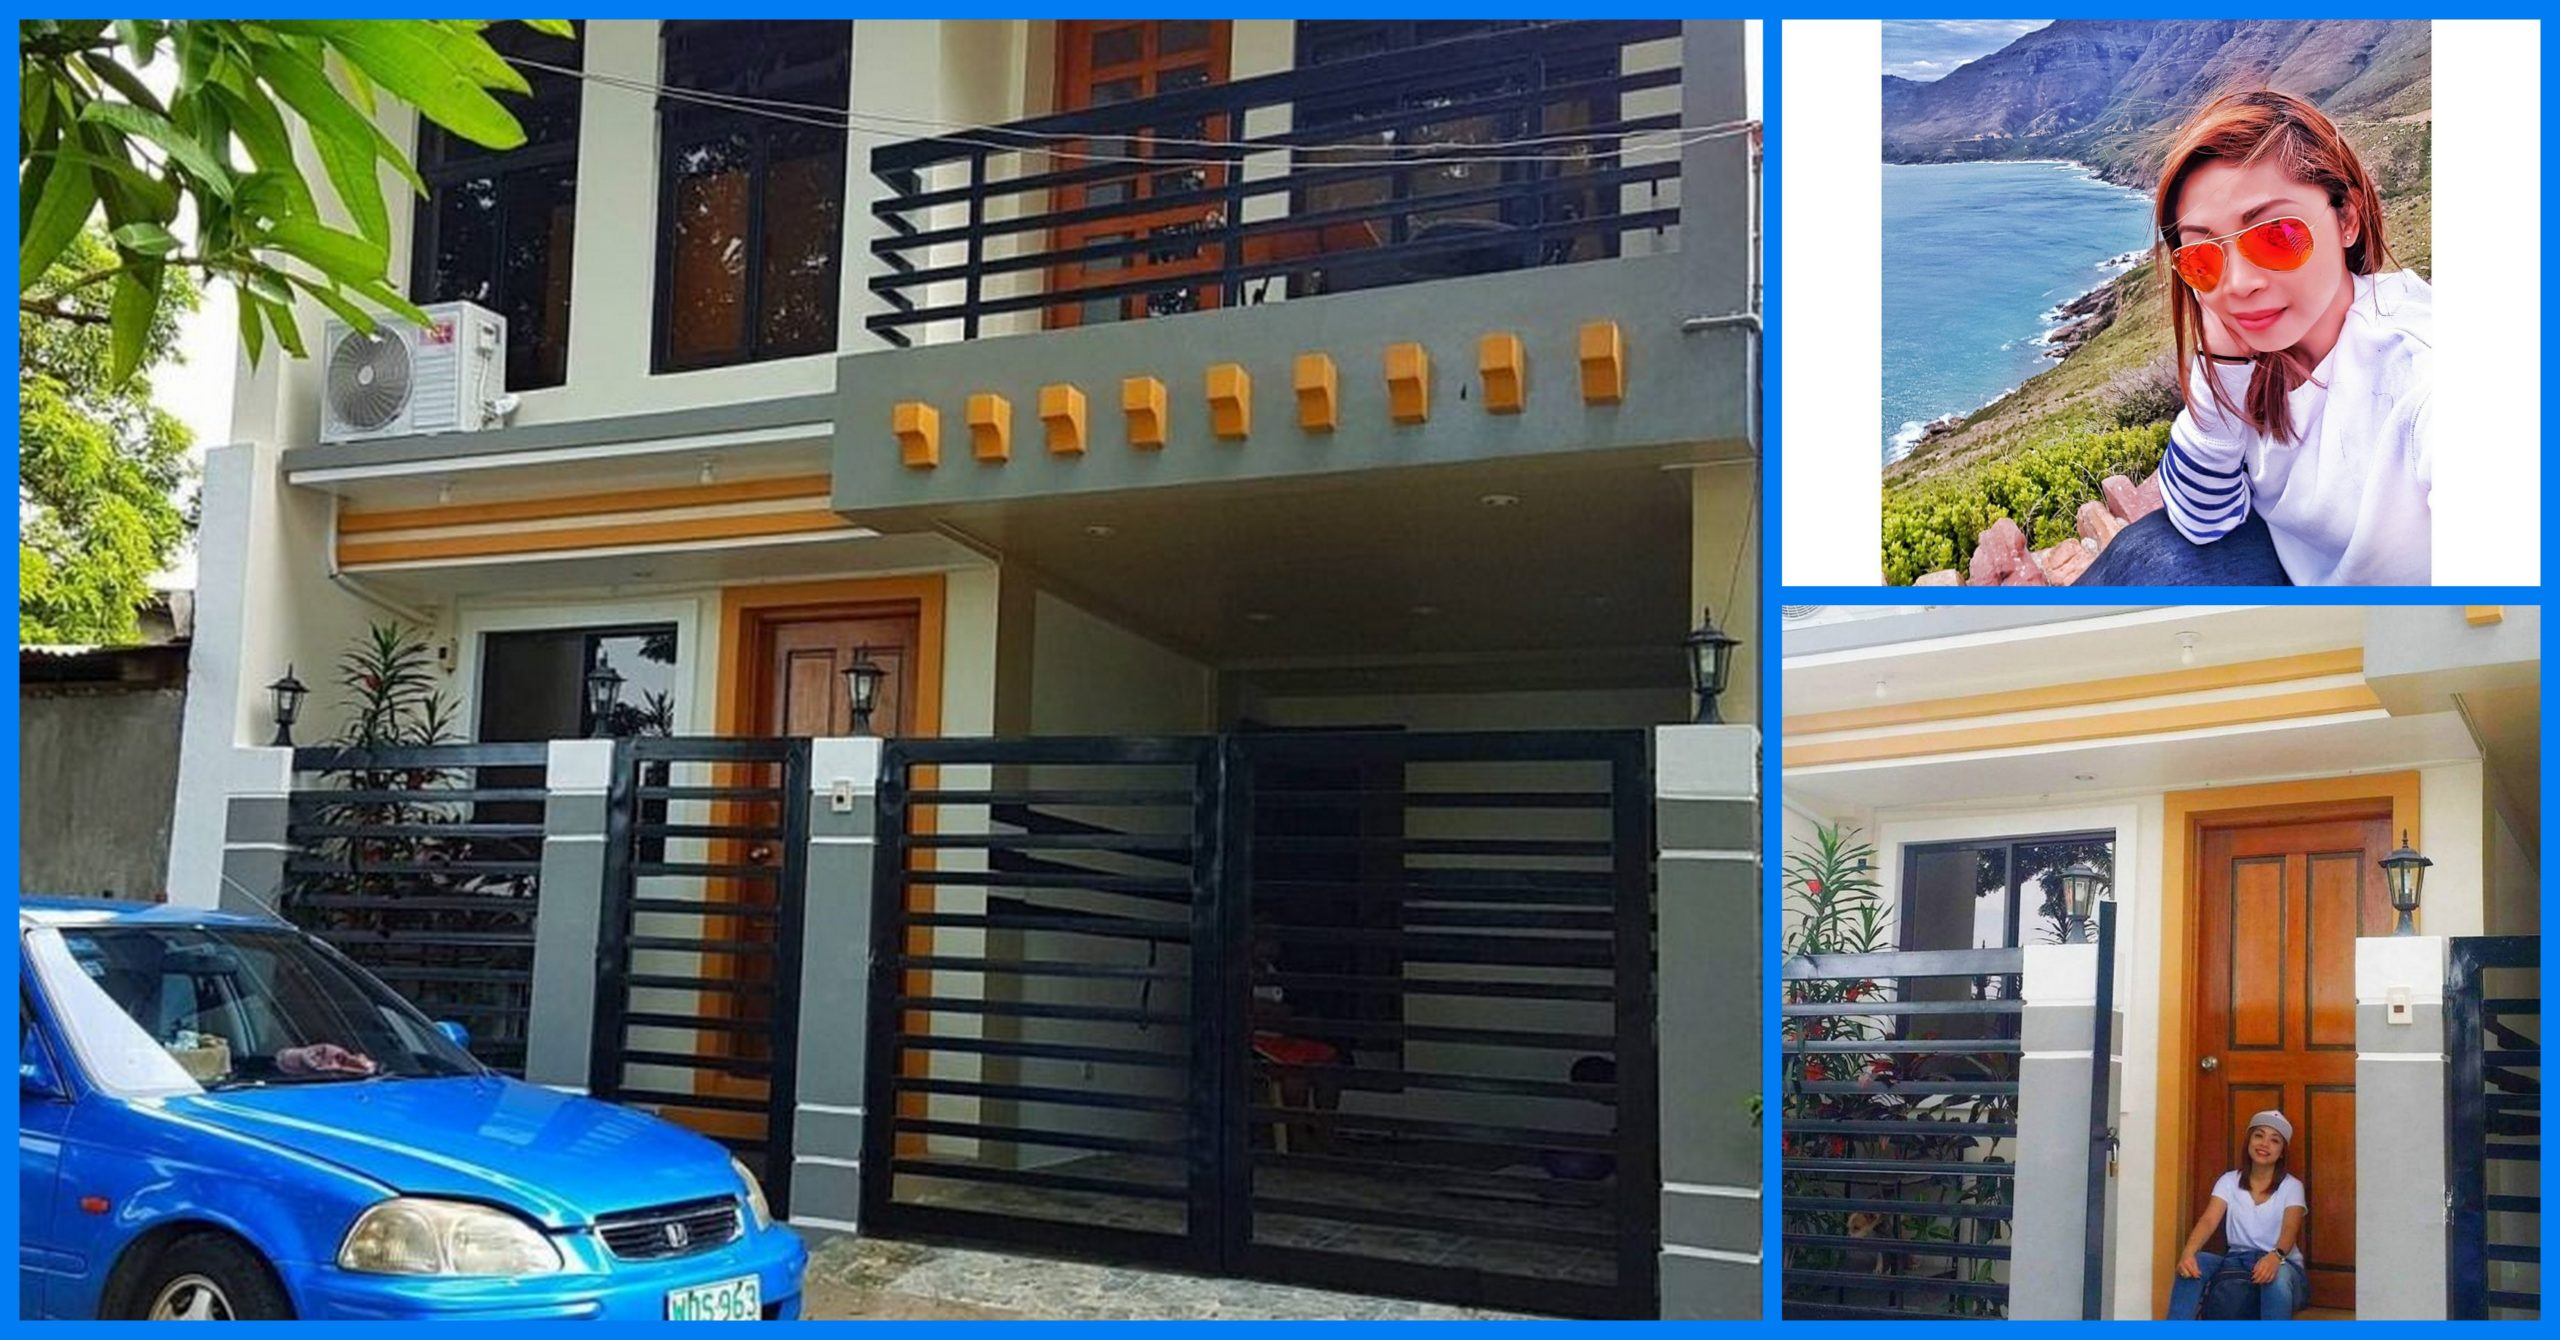 [Video] Dubai OFW Shares Transformation of Simple Bungalow House to 2-Storey Dream House with Roof Deck